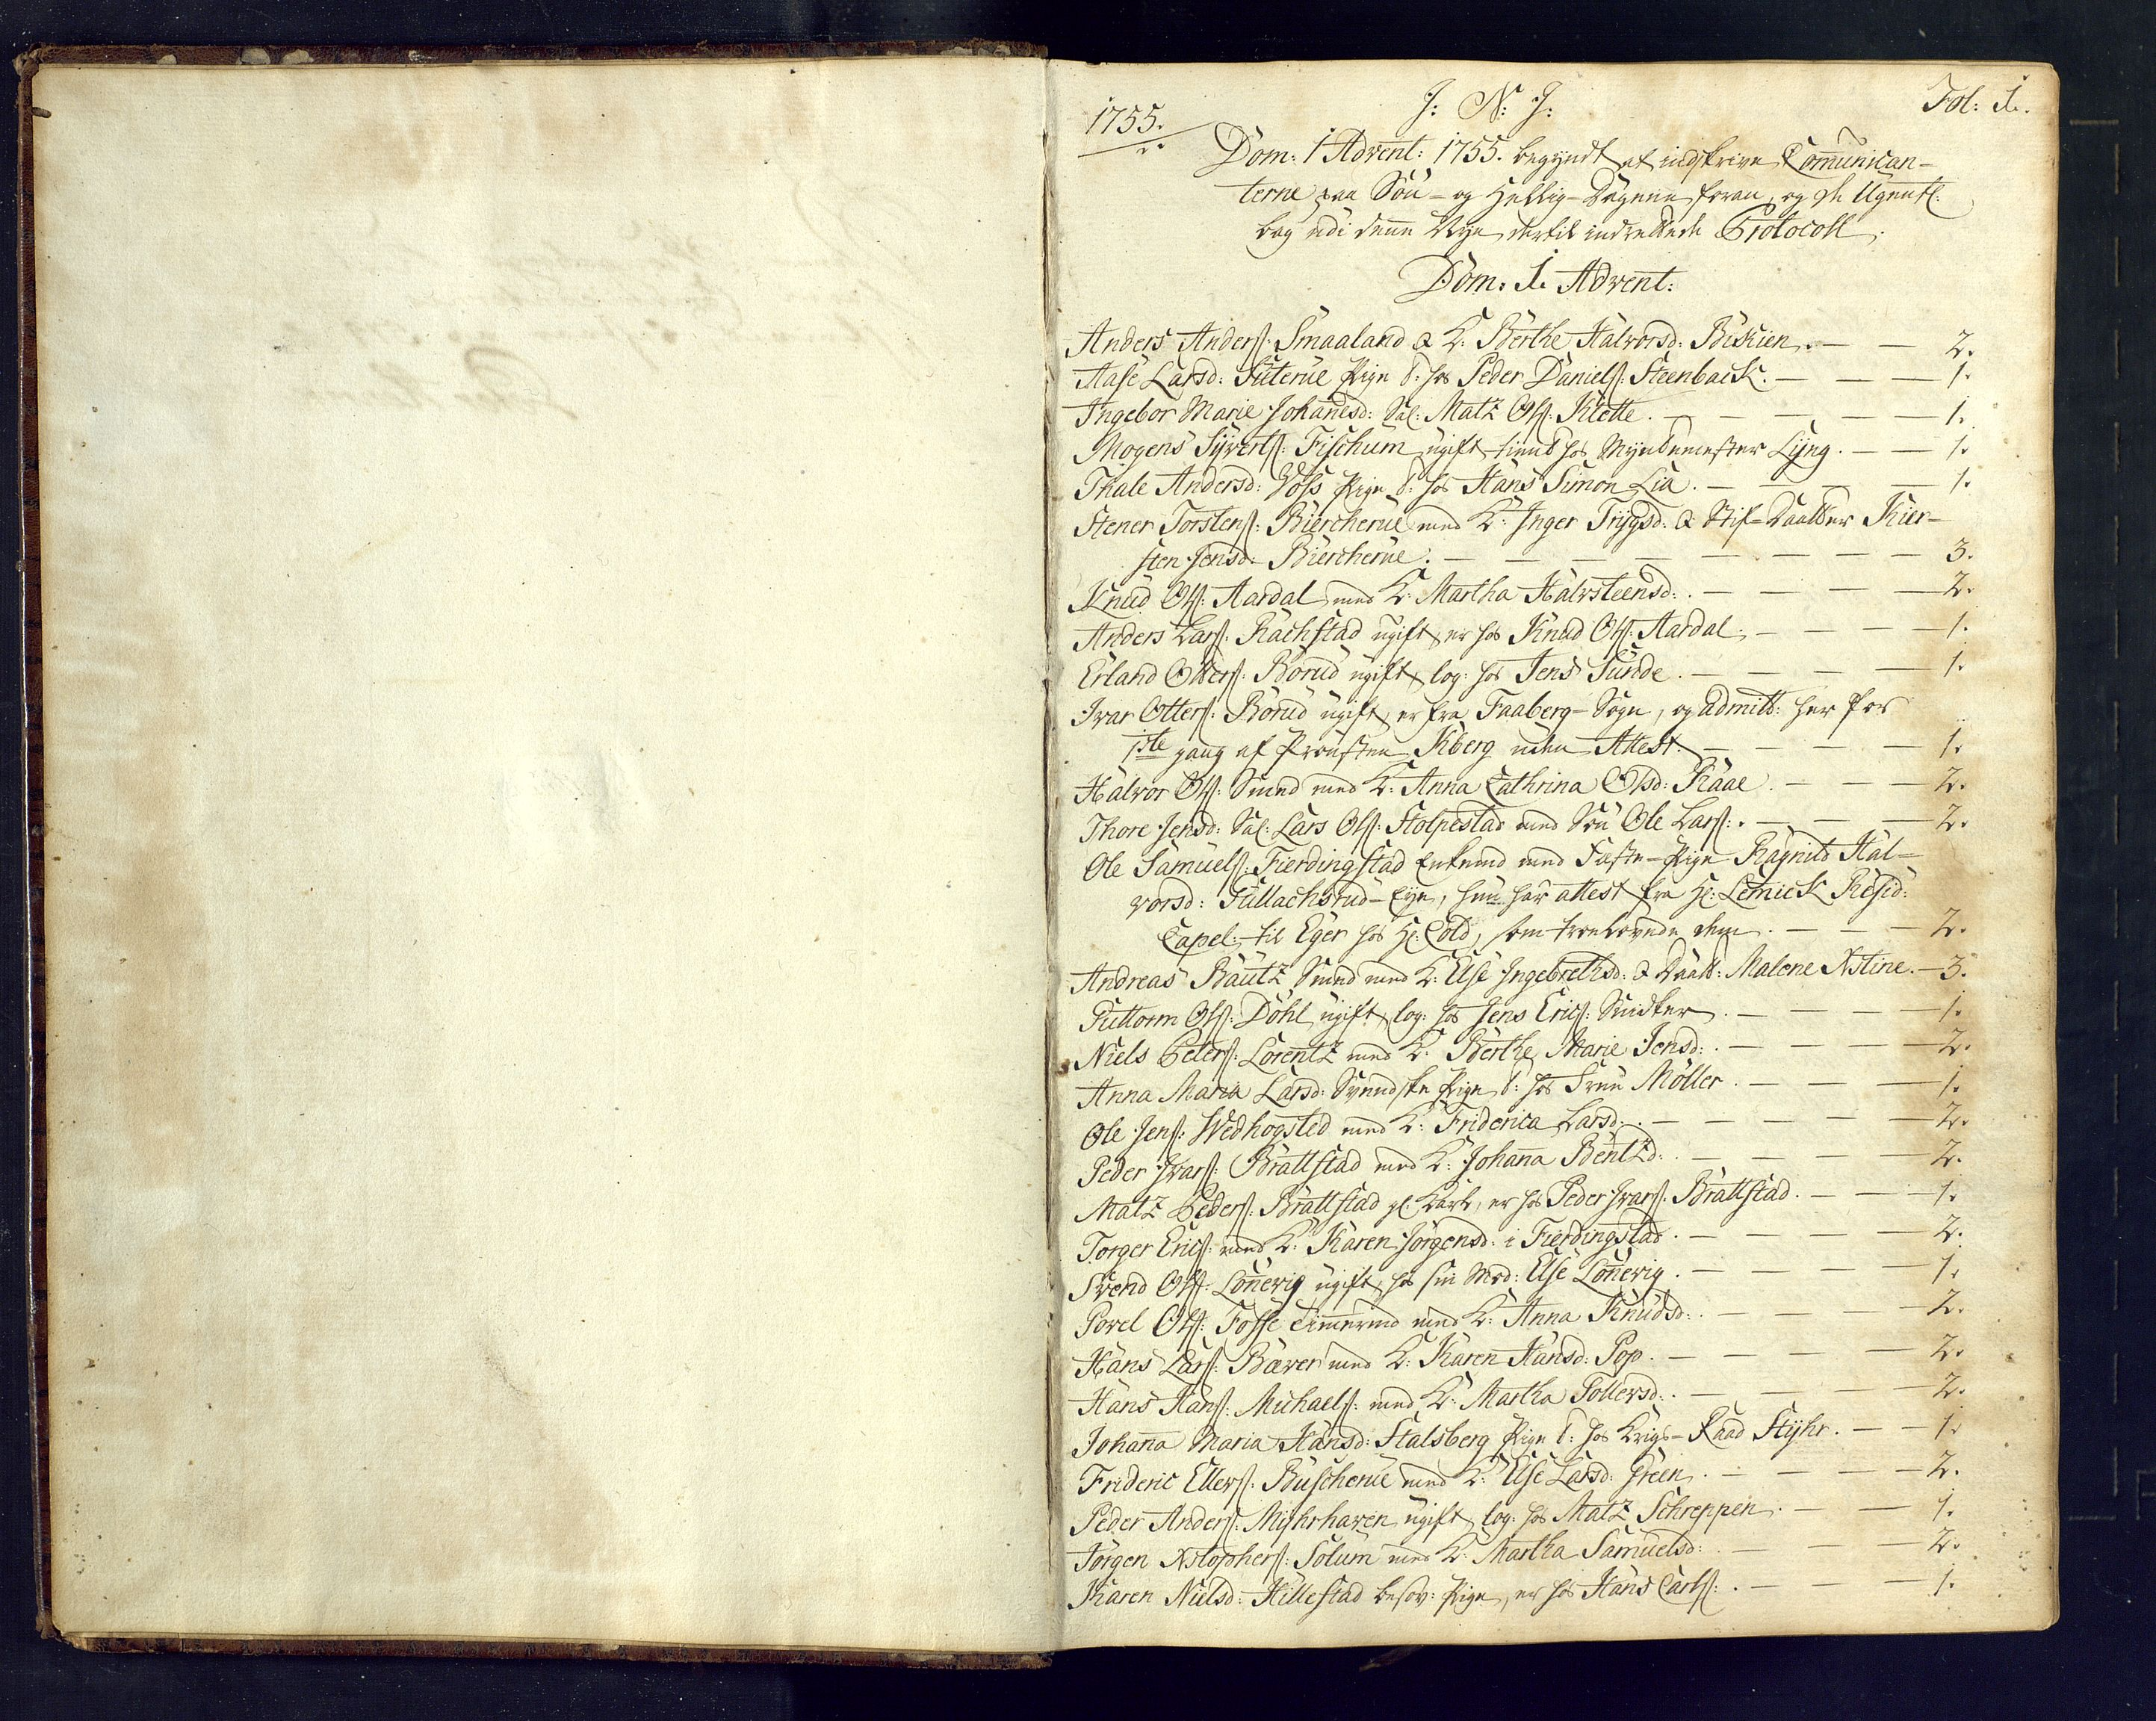 SAKO, Kongsberg kirkebøker, M/Ma/L0005: Communicants register no. 5, 1755-1761, p. 1